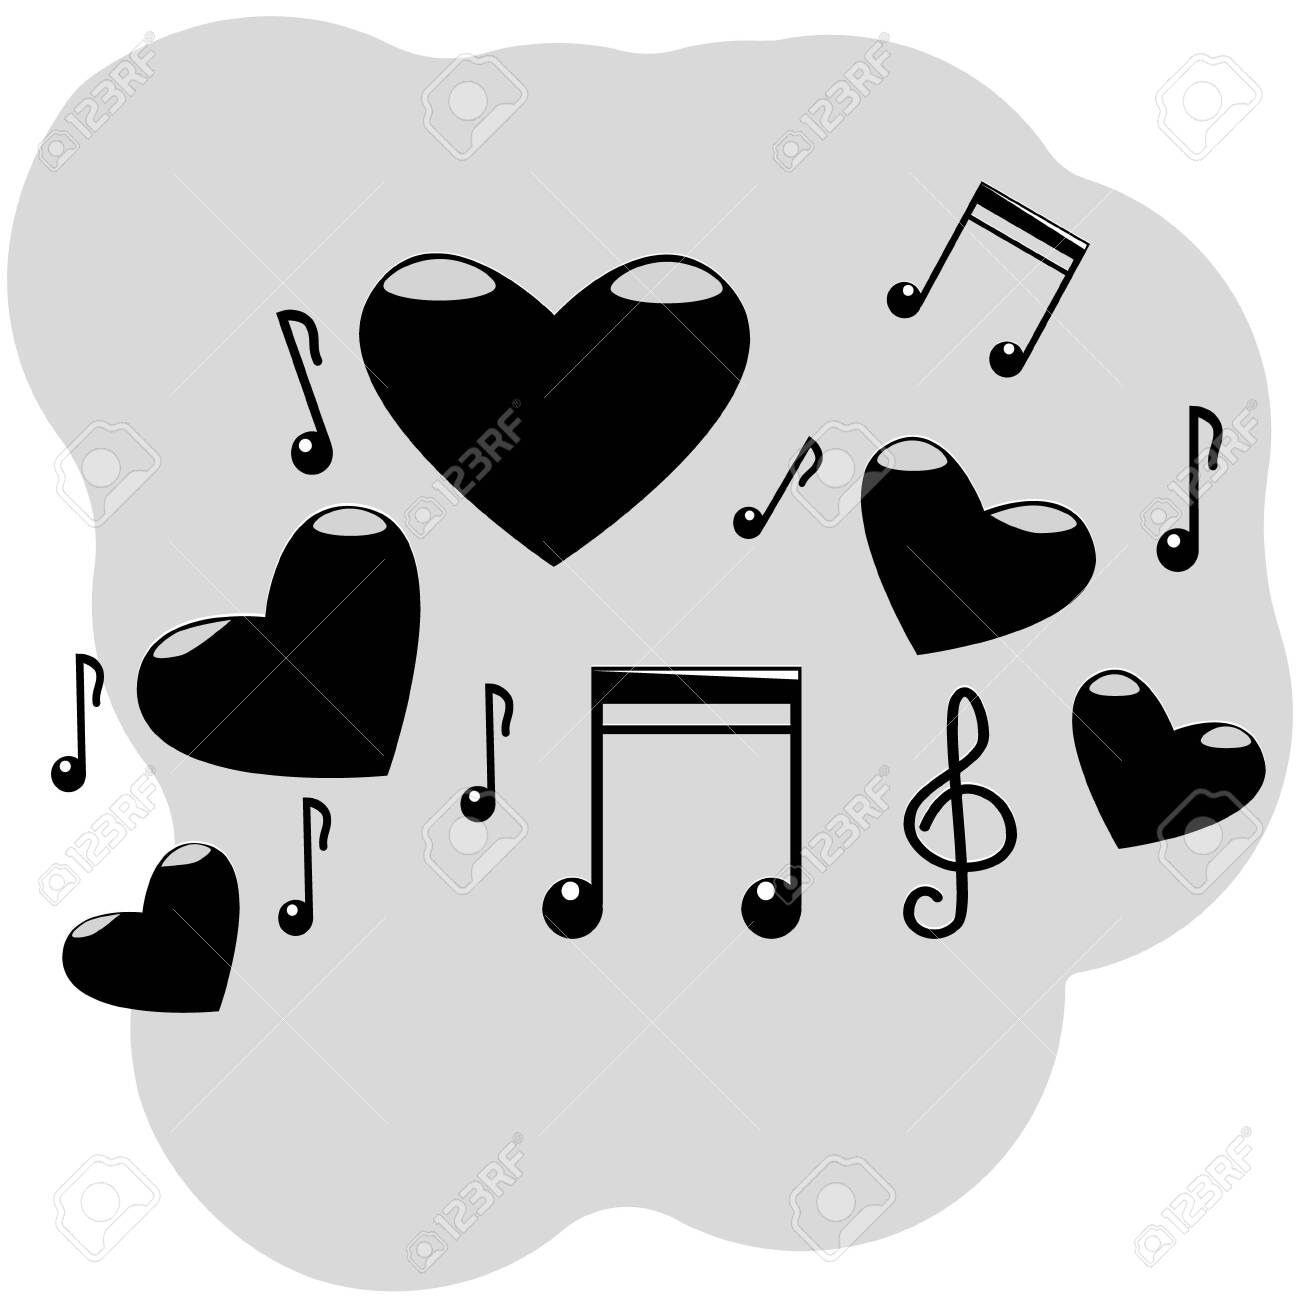 Vector Illustration Of Five Hearts With Musical Symbols Notes Royalty Free Cliparts Vectors And Stock Illustration Image 123636541